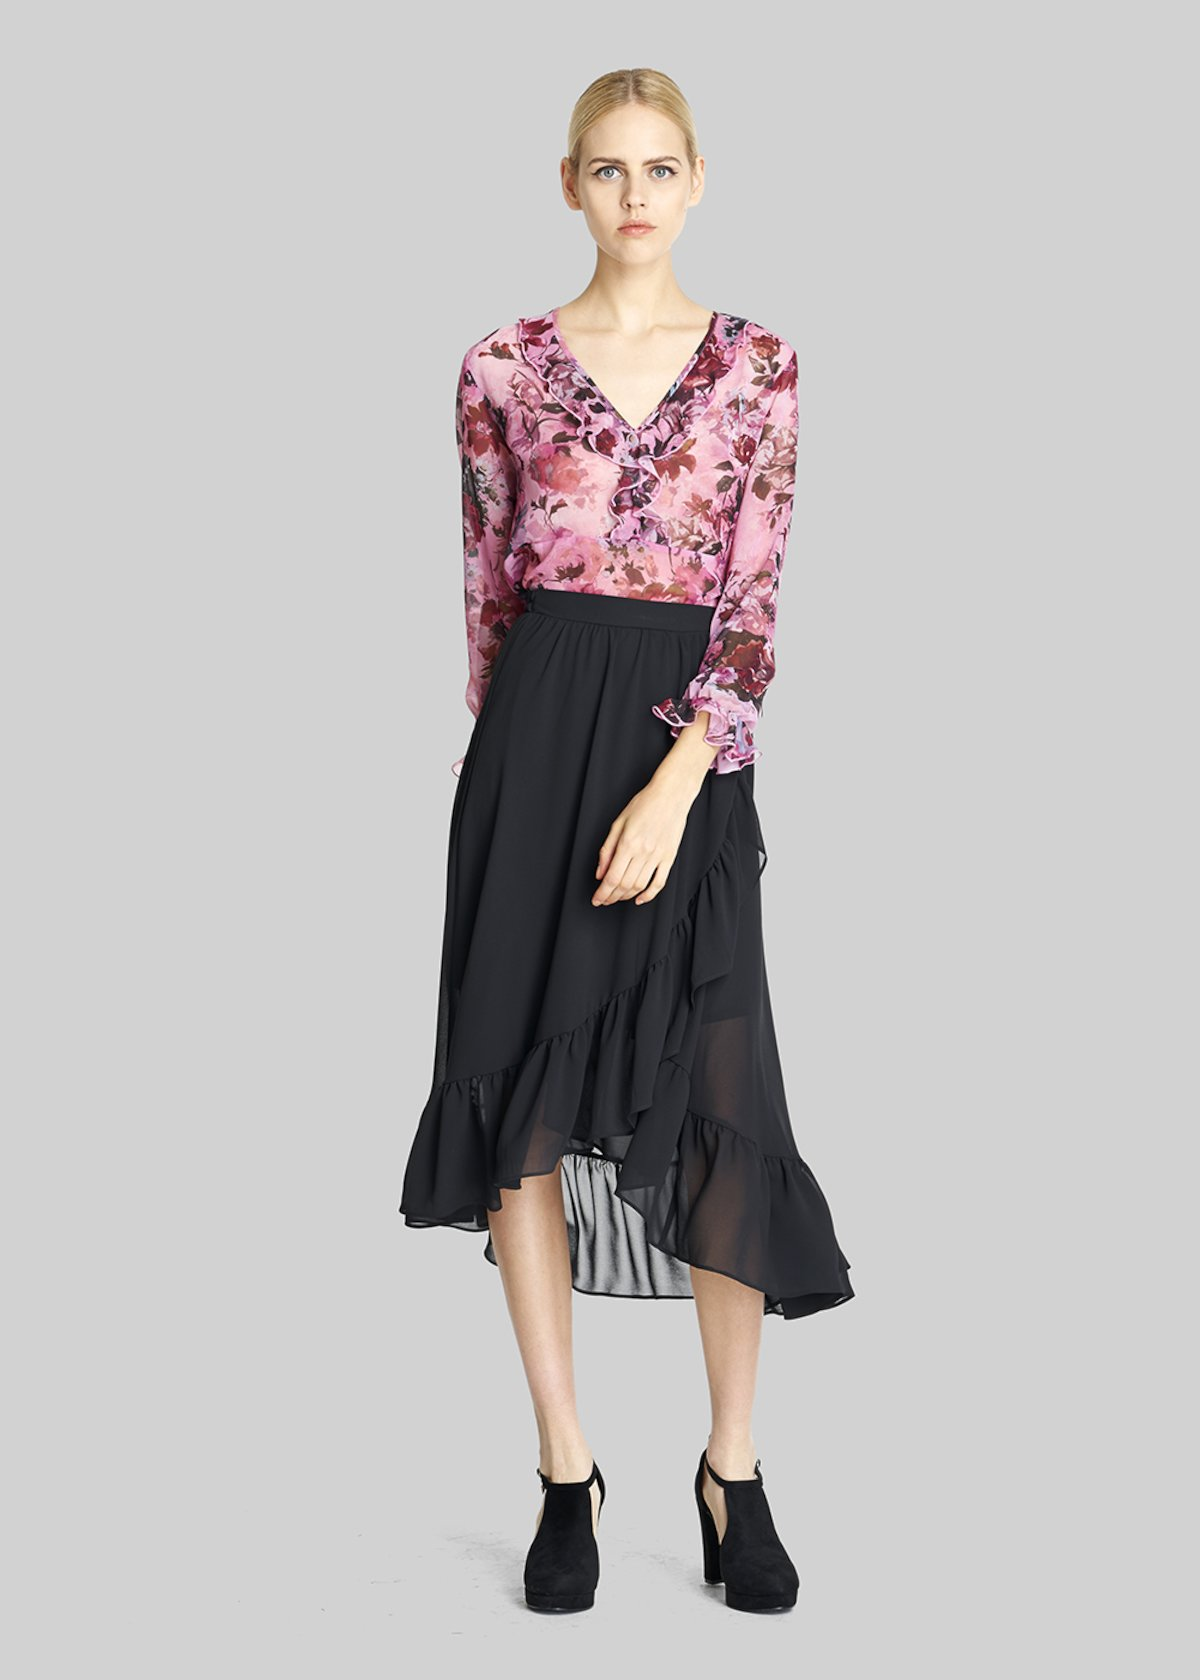 Geremy skirt with ruffles detail